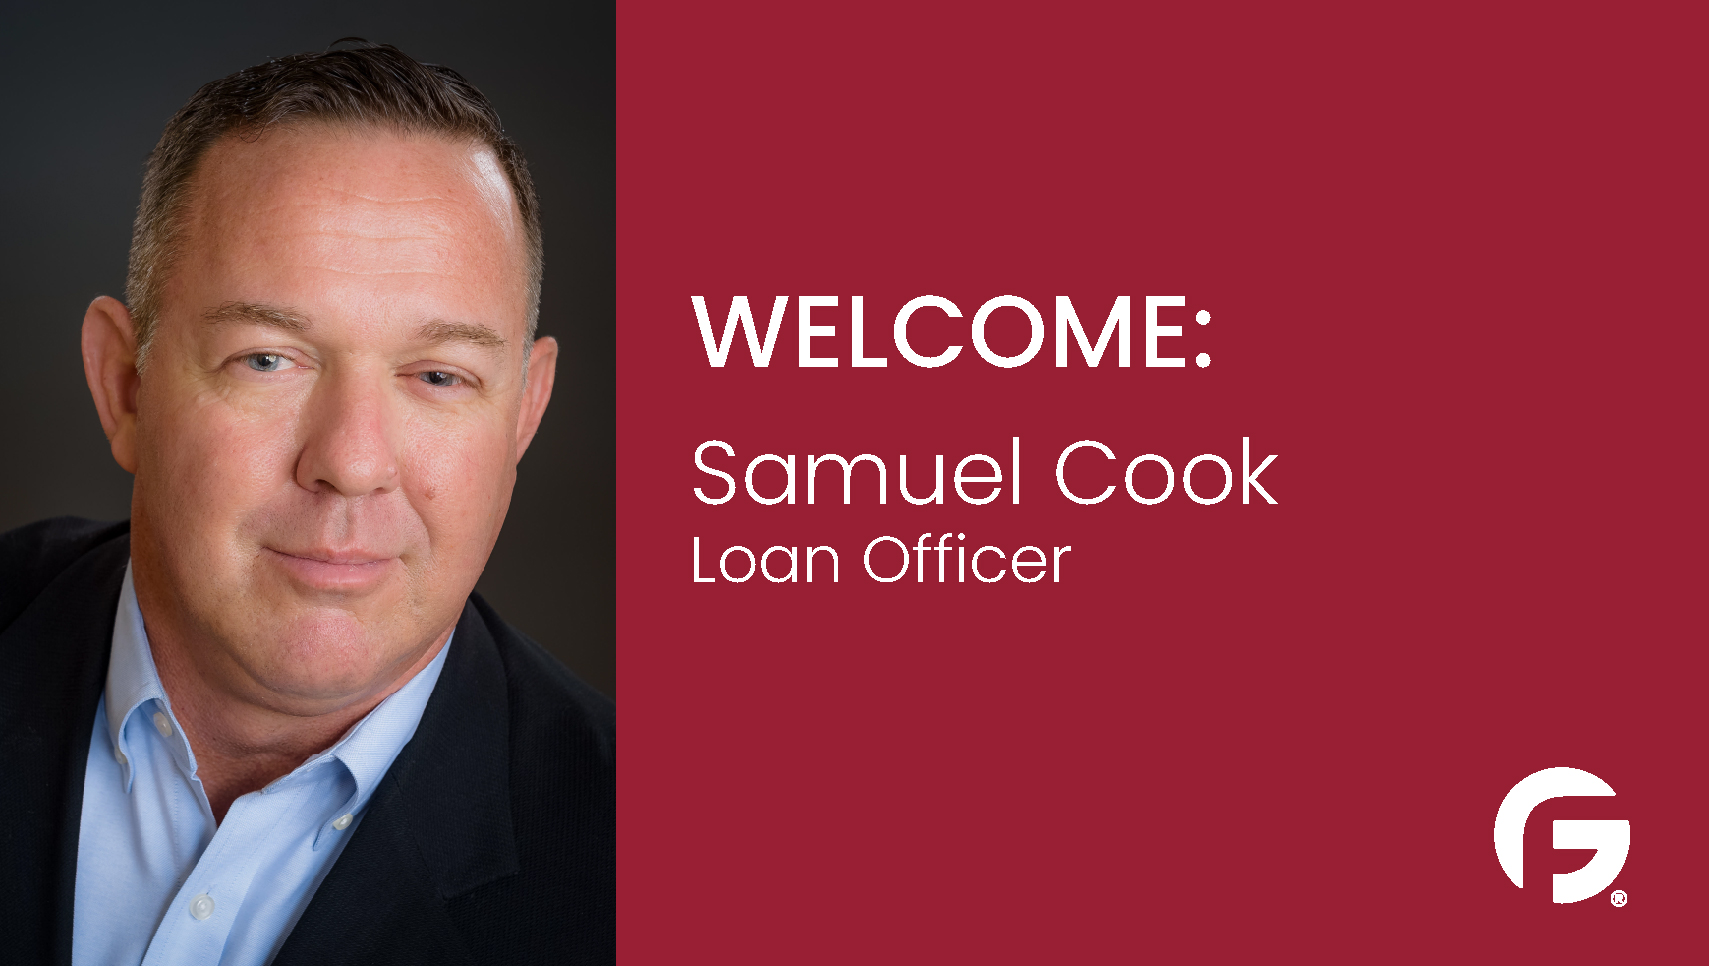 Sam Cook Loan Officer serving Arizona